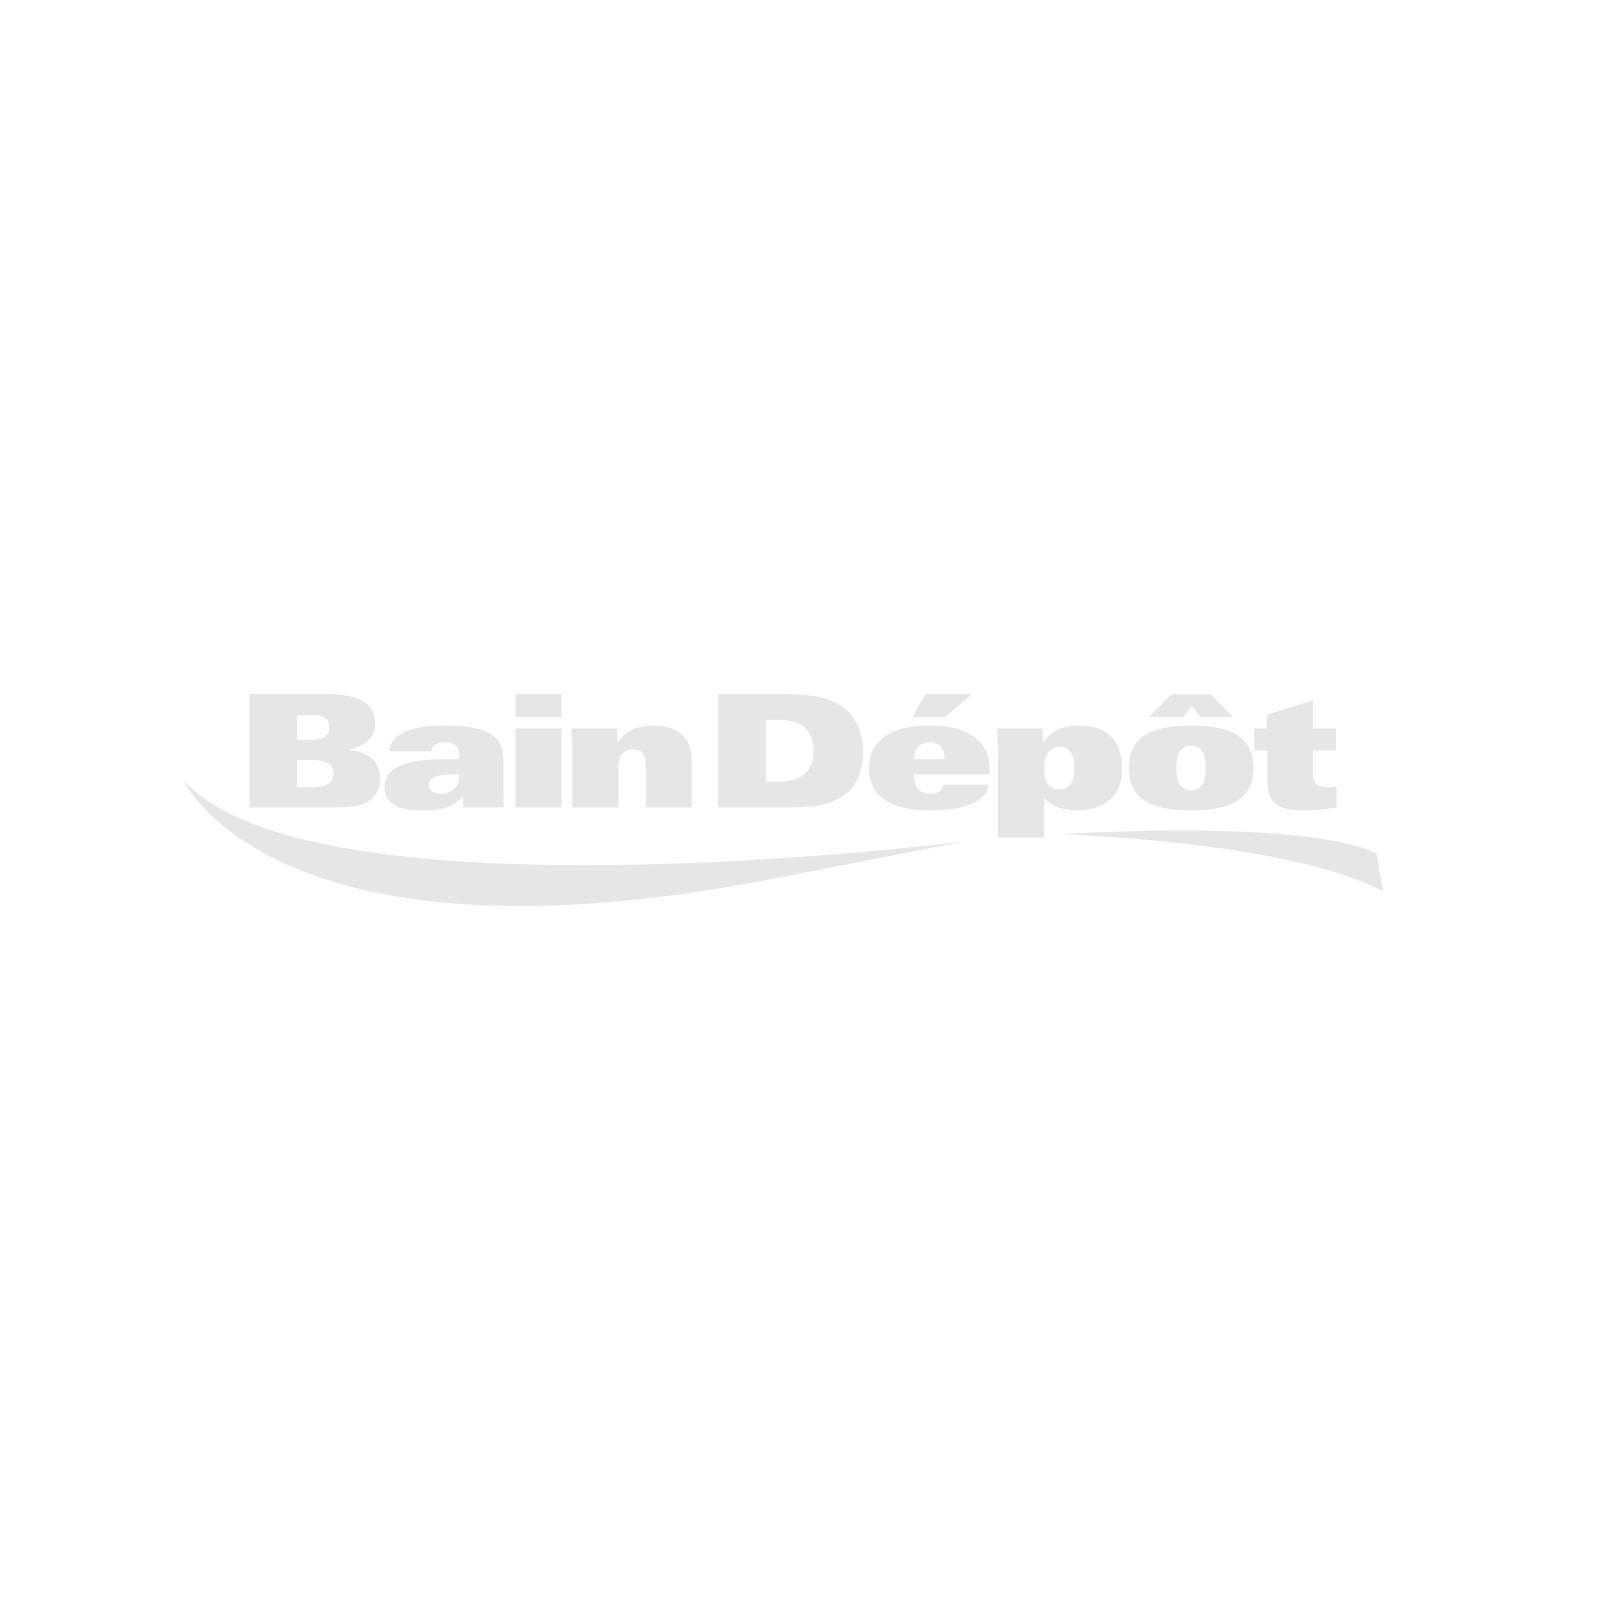 White and brushed nickel automatic soap dispenser - 12 fl. oz.